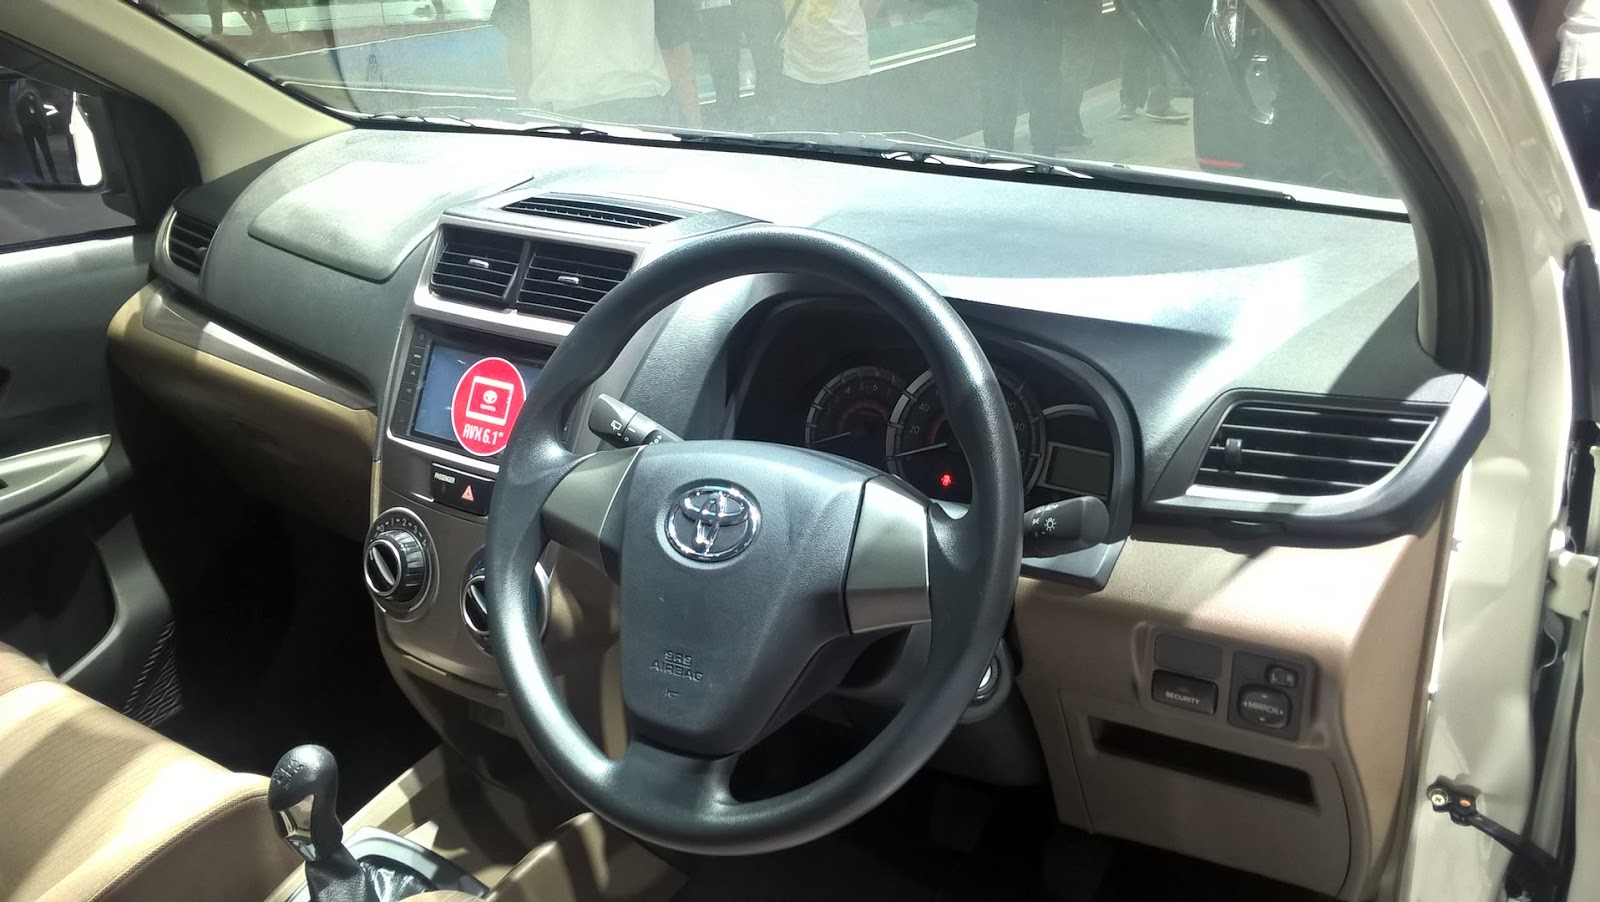 grand new avanza 1.5 g limited all kijang innova crysta toyota edition ms blog powering the is a 1 5 liter 5nr fe sourced from vios which produces 104 hp and 139 nm unlike 3 variant